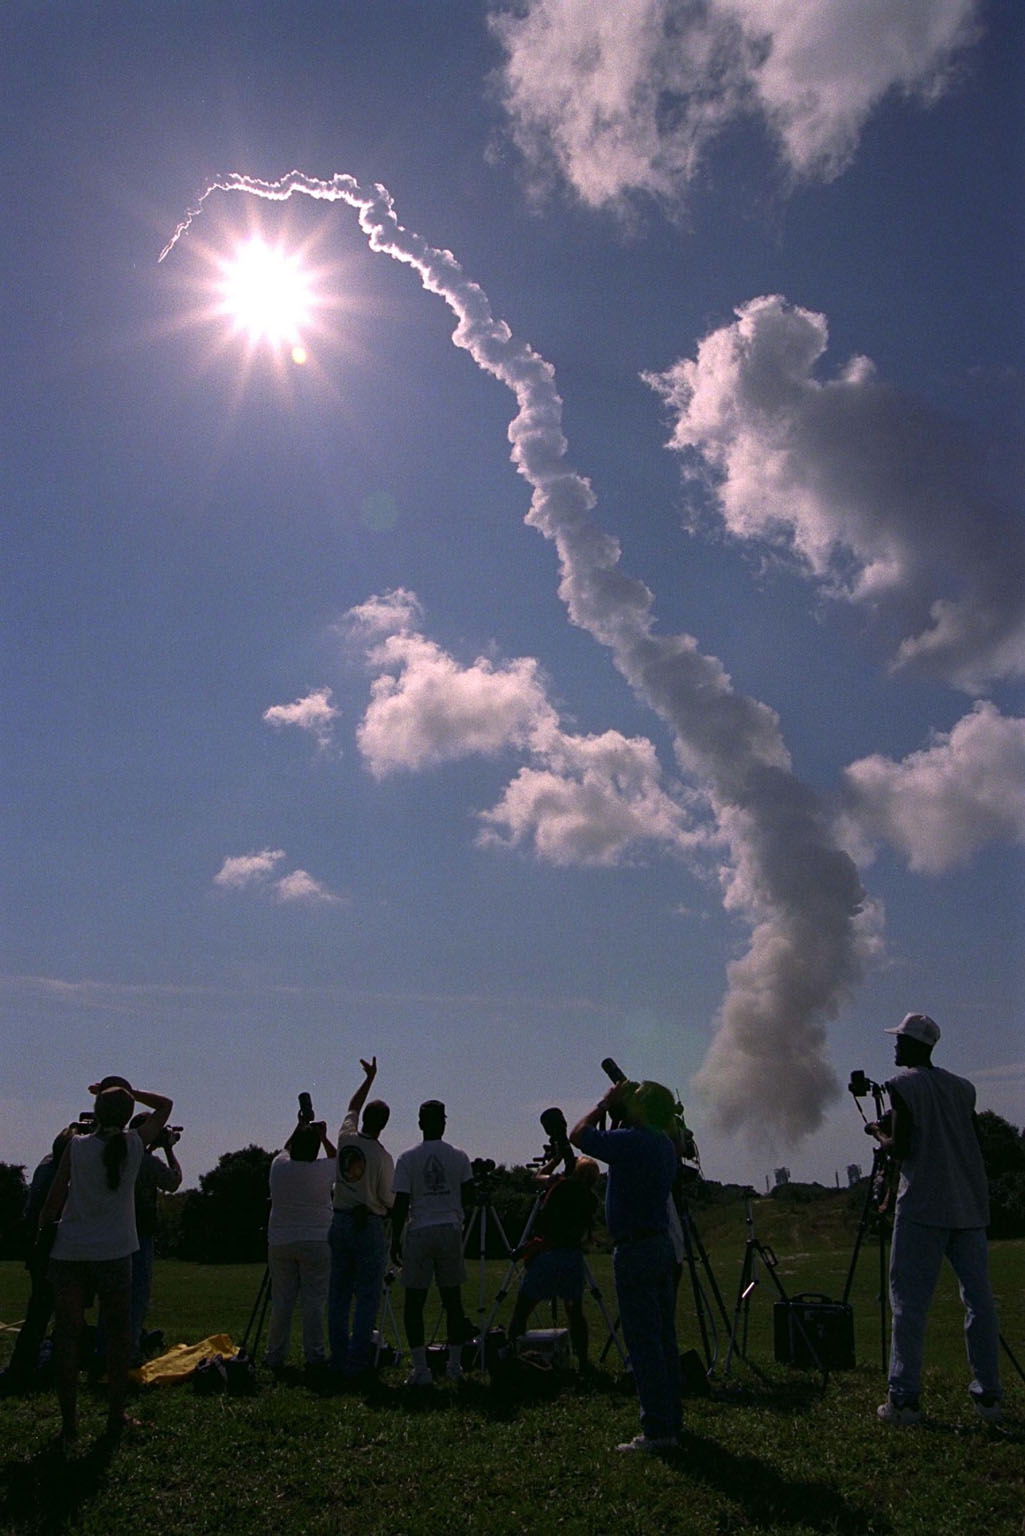 Photographers and other onlookers watch as a Boeing Delta II expendable launch vehicle lifts off with NASA?s Advanced Composition Explorer (ACE) observatory at 10:39 a.m. EDT, on Aug. 25, 1997, from Launch Complex 17A, Cape Canaveral Air Station. This is the second Delta launch under the Boeing name and the first from Cape Canaveral. Liftoff had been scheduled for Aug. 24, but was scrubbed one day by Air Force range safety personnel because two commercial fishing vessels were within the Delta?s launch danger area. The ACE spacecraft will study low-energy particles of solar origin and high-energy galactic particles on its one-million-mile journey. The collecting power of instruments aboard ACE is 10 to 1,000 times greater than anything previously flown to collect similar data by NASA. Study of these energetic particles may contribute to our understanding of the formation and evolution of the solar system. ACE has a two-year minimum mission lifetime and a goal of five years of service. ACE was built for NASA by the Johns Hopkins Applied Physics Laboratory and is managed by the Explorer Project Office at NASA's Goddard Space Flight Center. The lead scientific institution is the California Institute of Technology (Caltech) in Pasadena, Calif